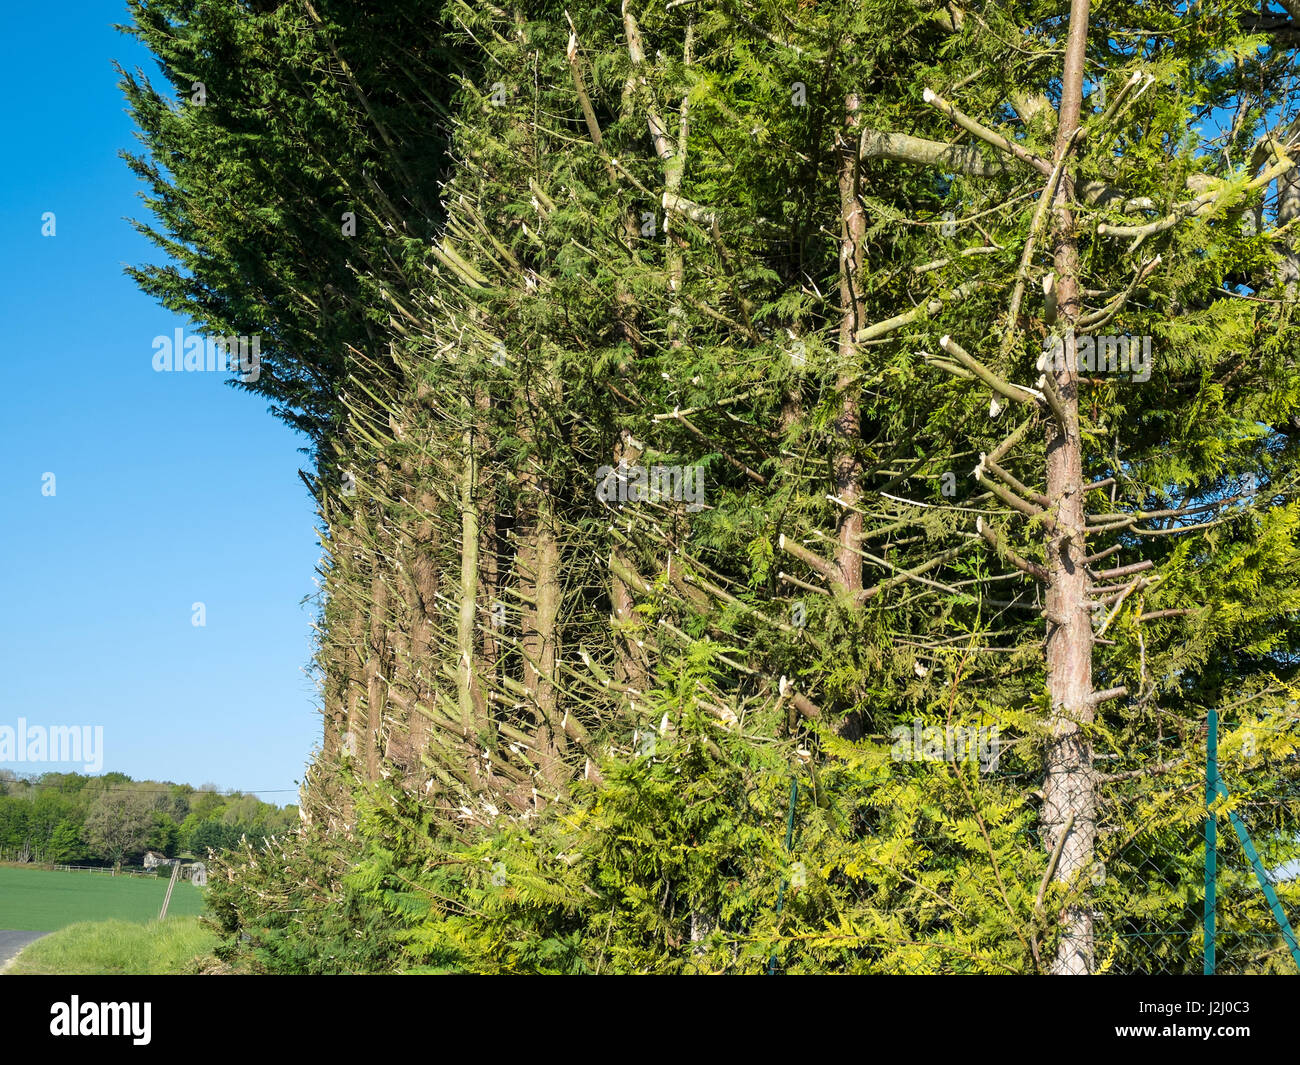 Evergreen trees heavily pruned along roadside. - Stock Image